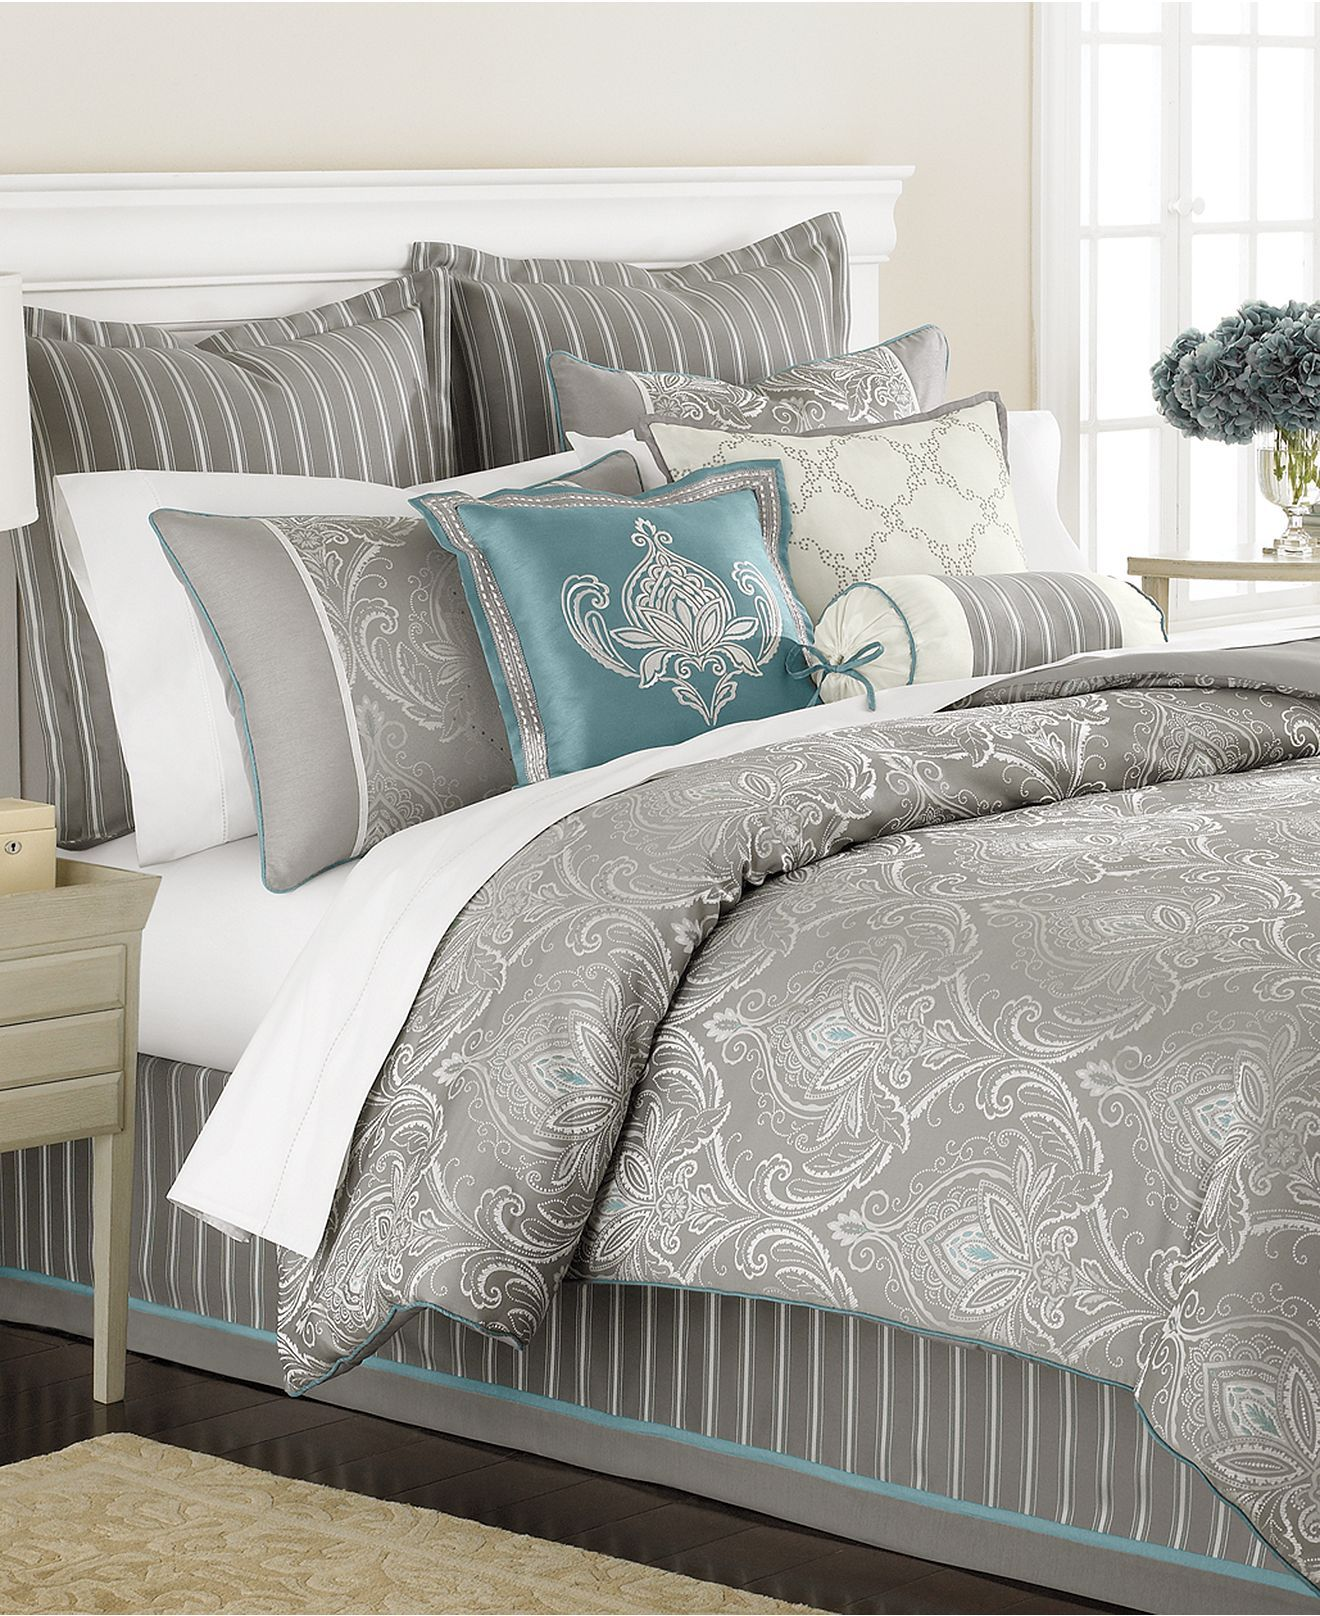 elegant and get pleated quotations grey piece modern luxury deals cheap comforter shopping cal bedding coral king floral printed set find guides hues on